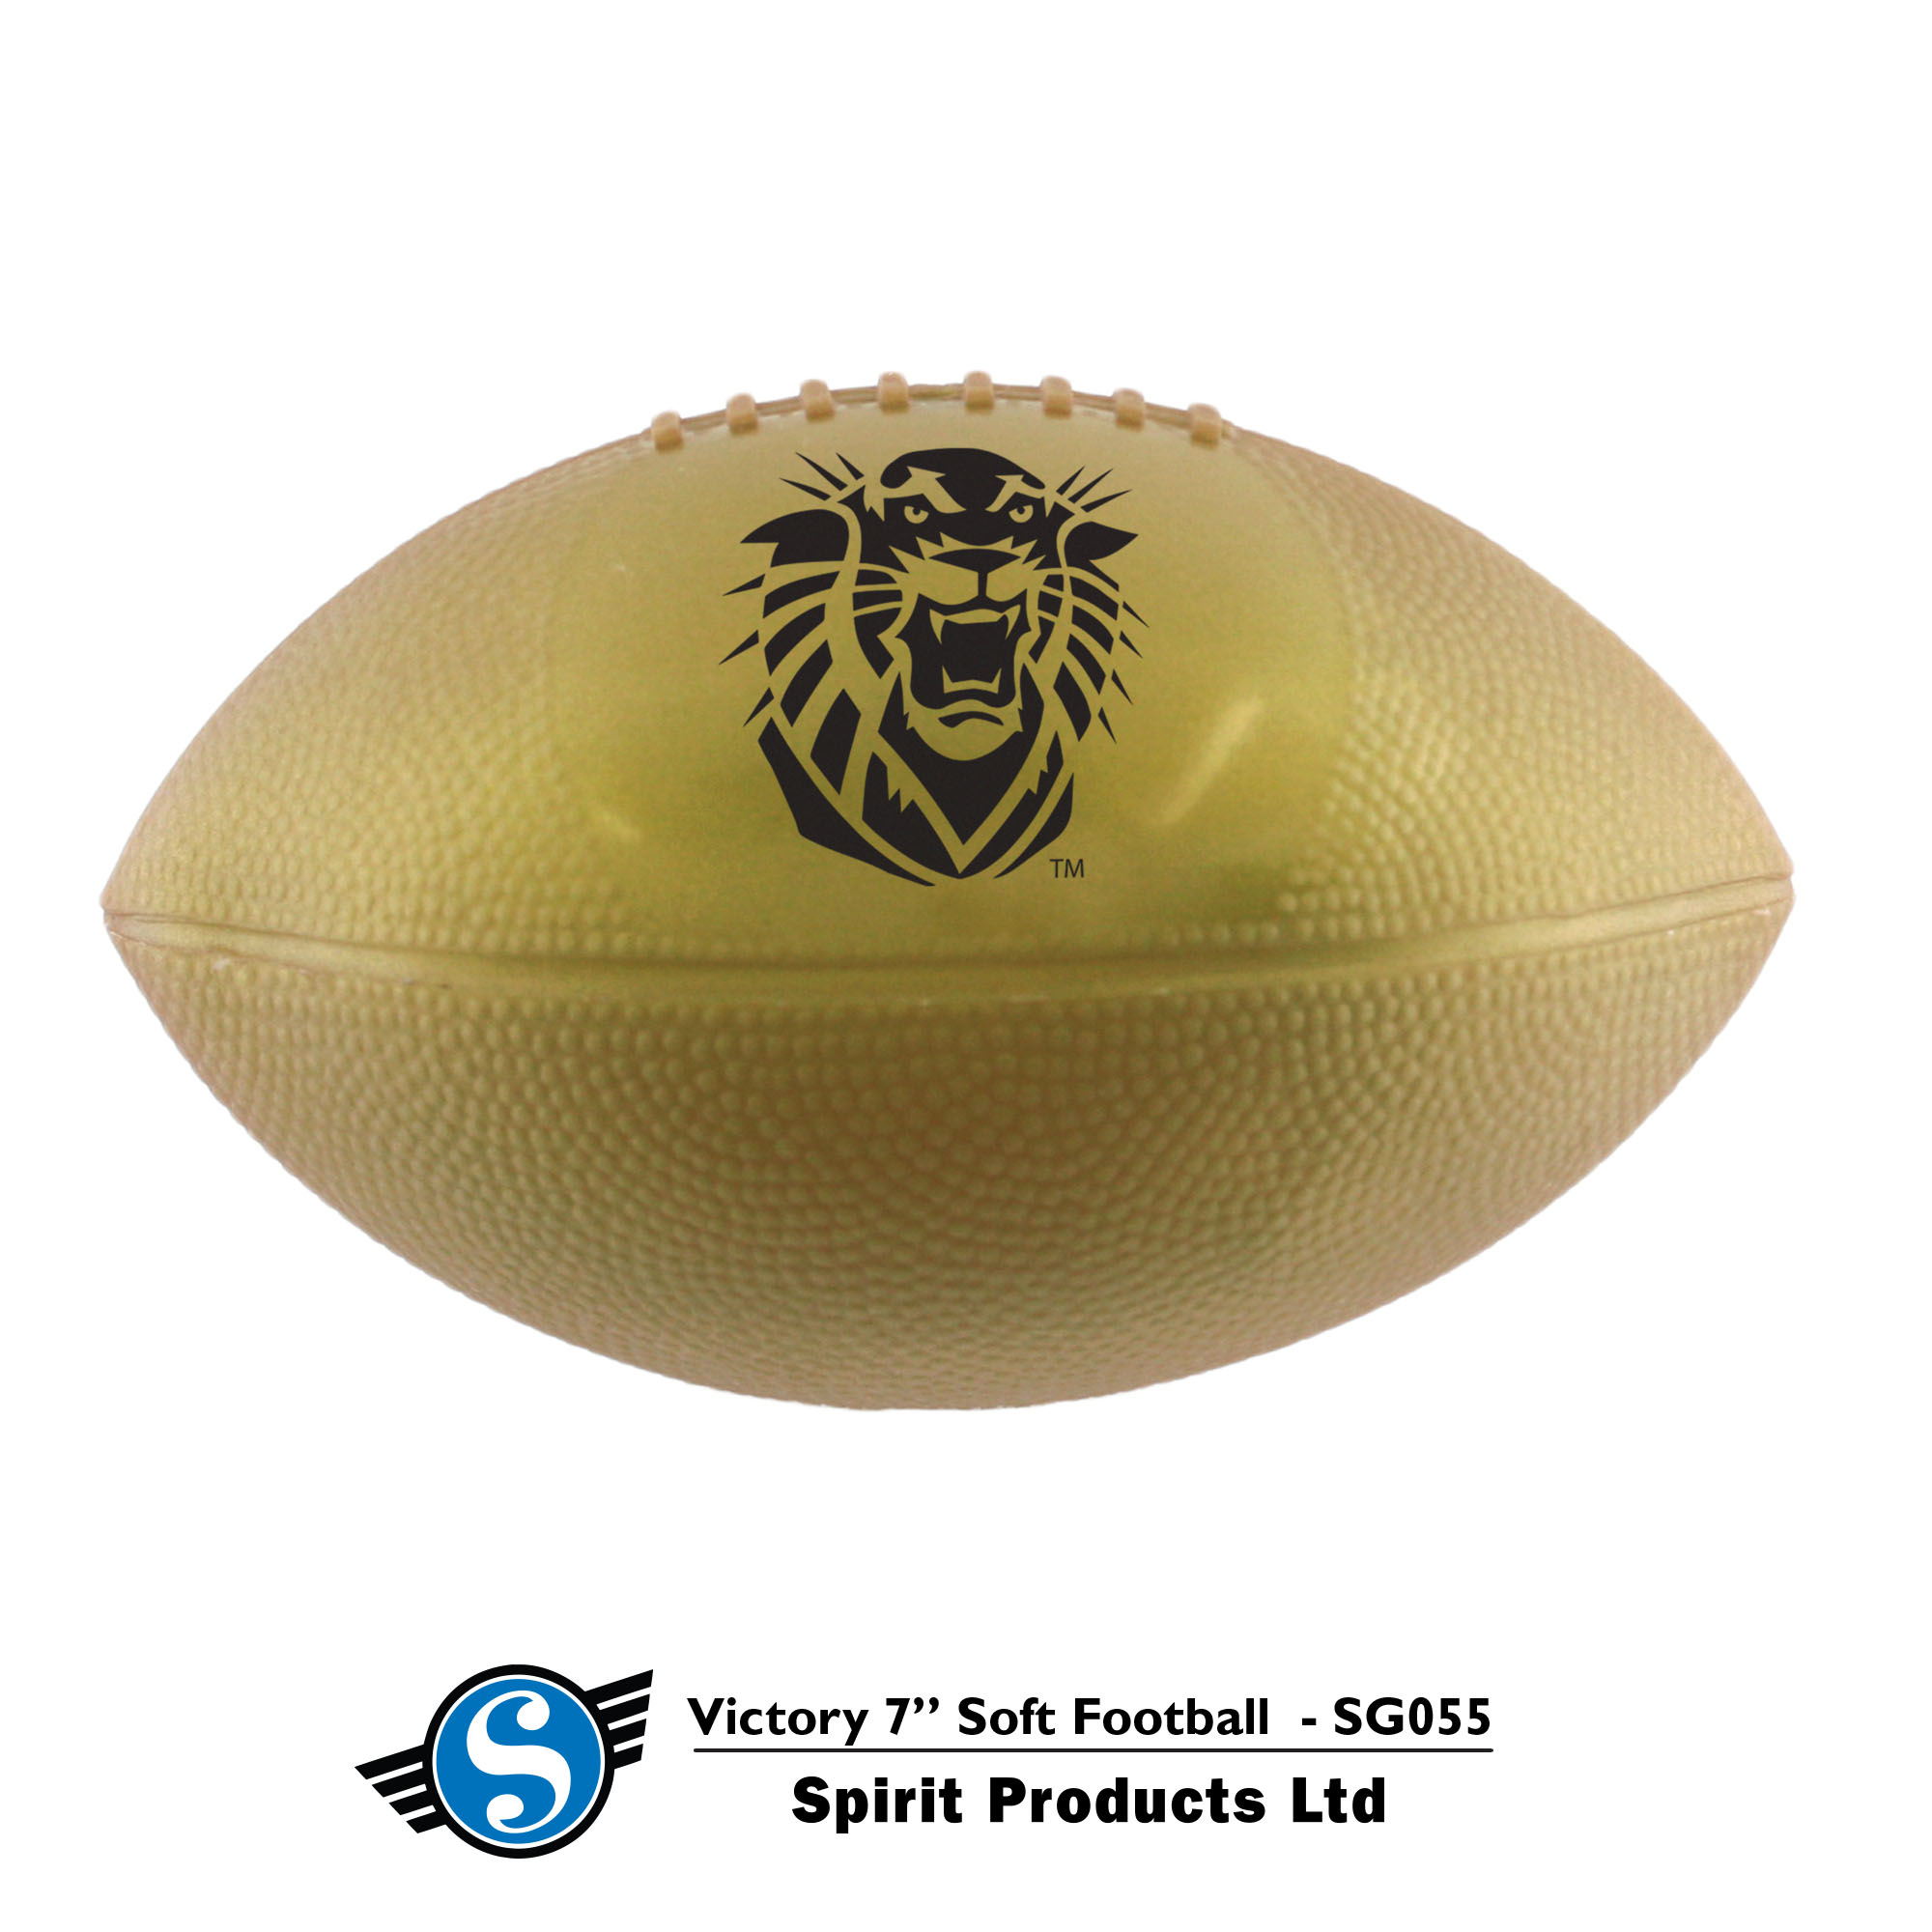 Image for the Victory Soft Sports Ball, Metallic Gold, Spirit Products product